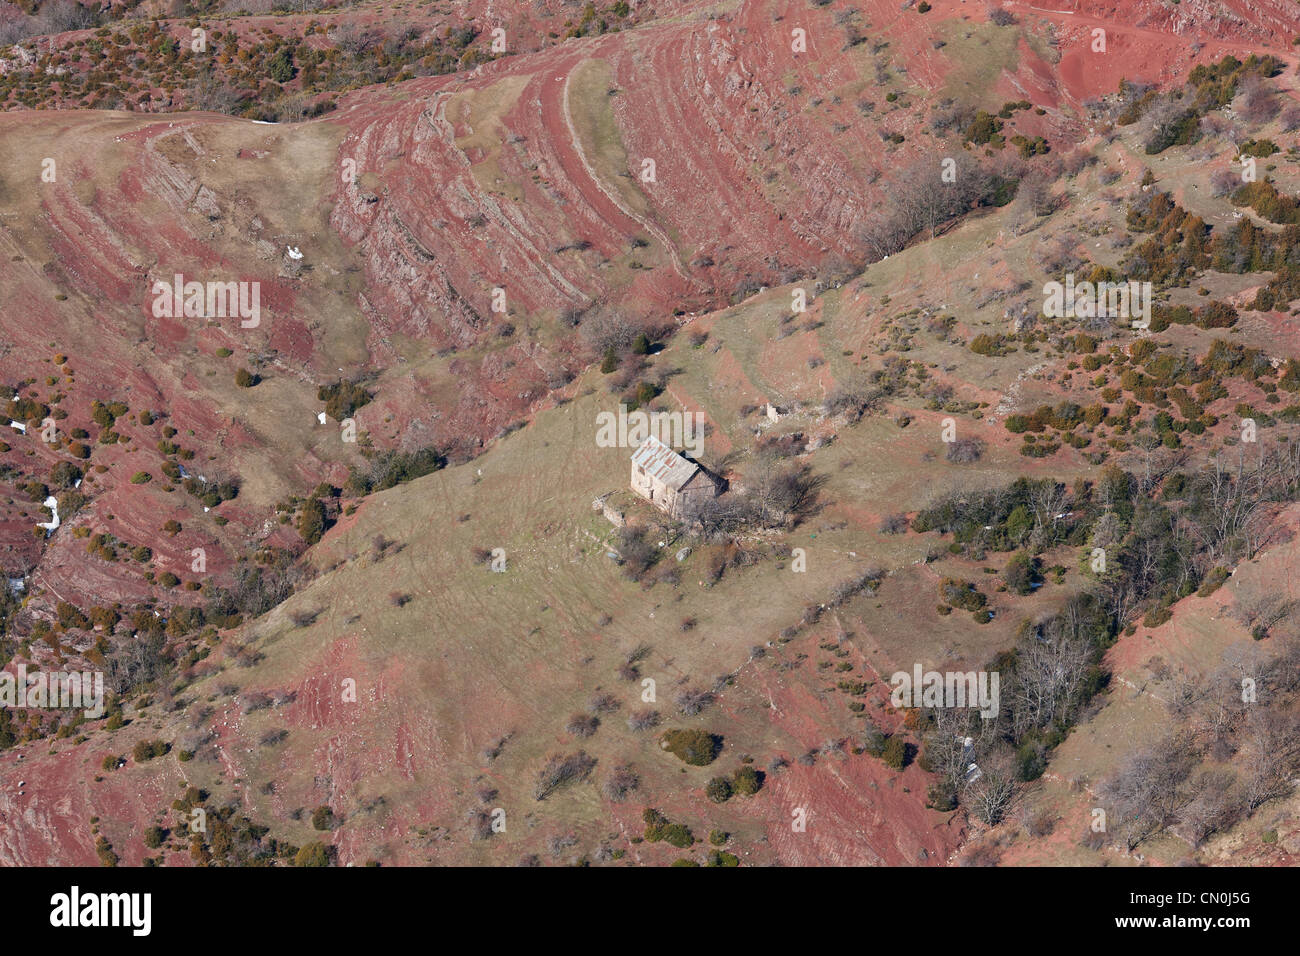 LONELY HOUSE IN A RED PELITE LANDSCAPE (aerial view). Illion, French Riviera's backcountry, France. - Stock Image